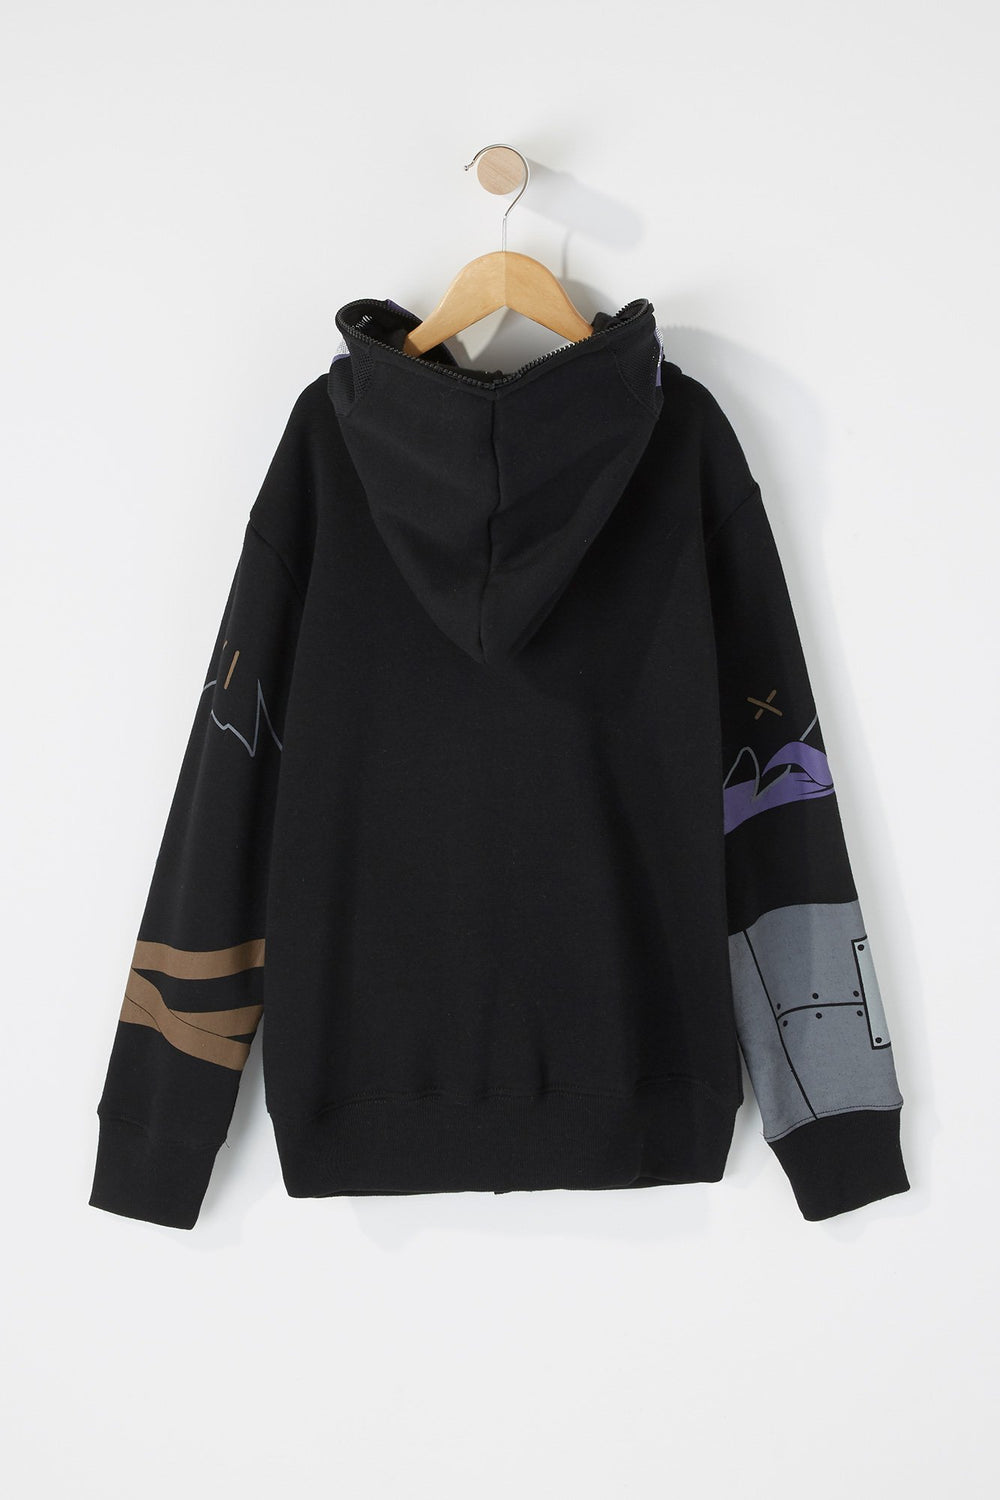 West49 Boys Warrior Peeper Hoodie Black